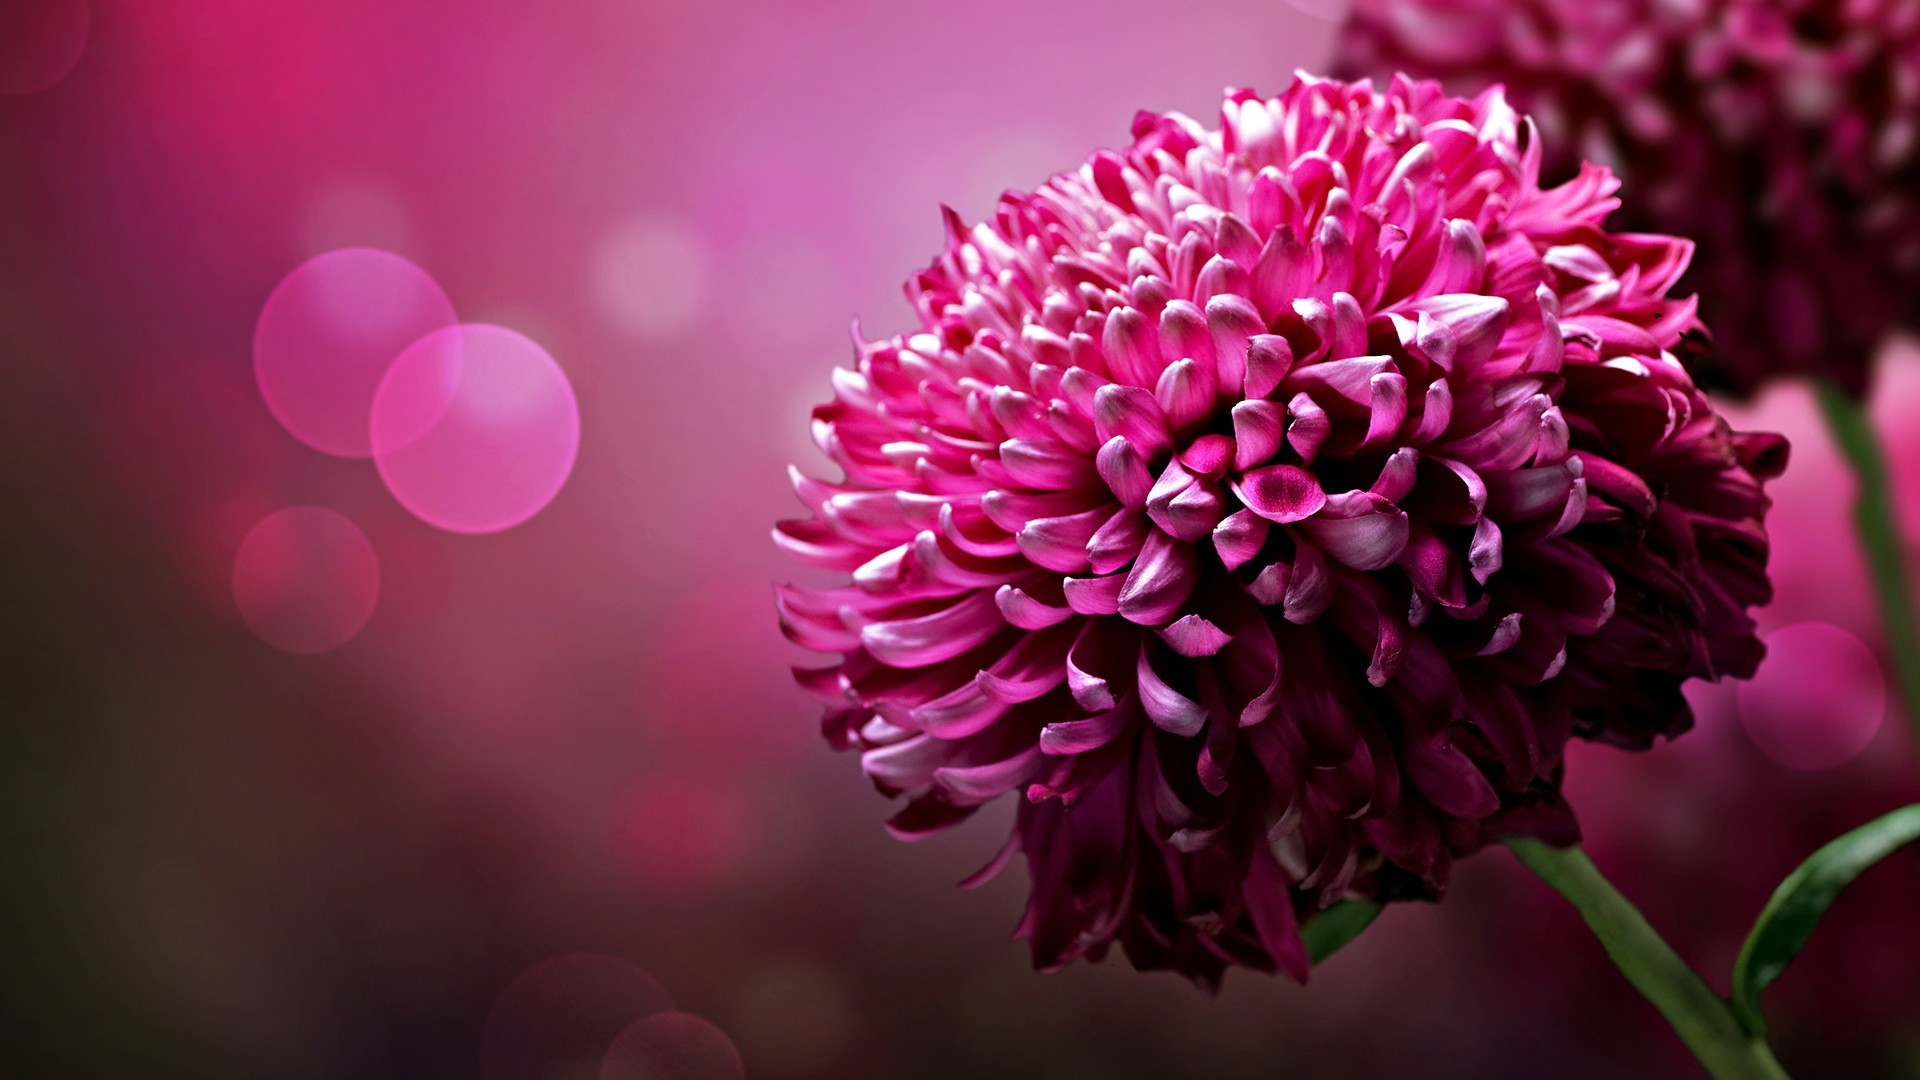 HD Wallpapers Widescreen 1080P 3D | … in 1080p 6 200×112  Beautiful Flowers